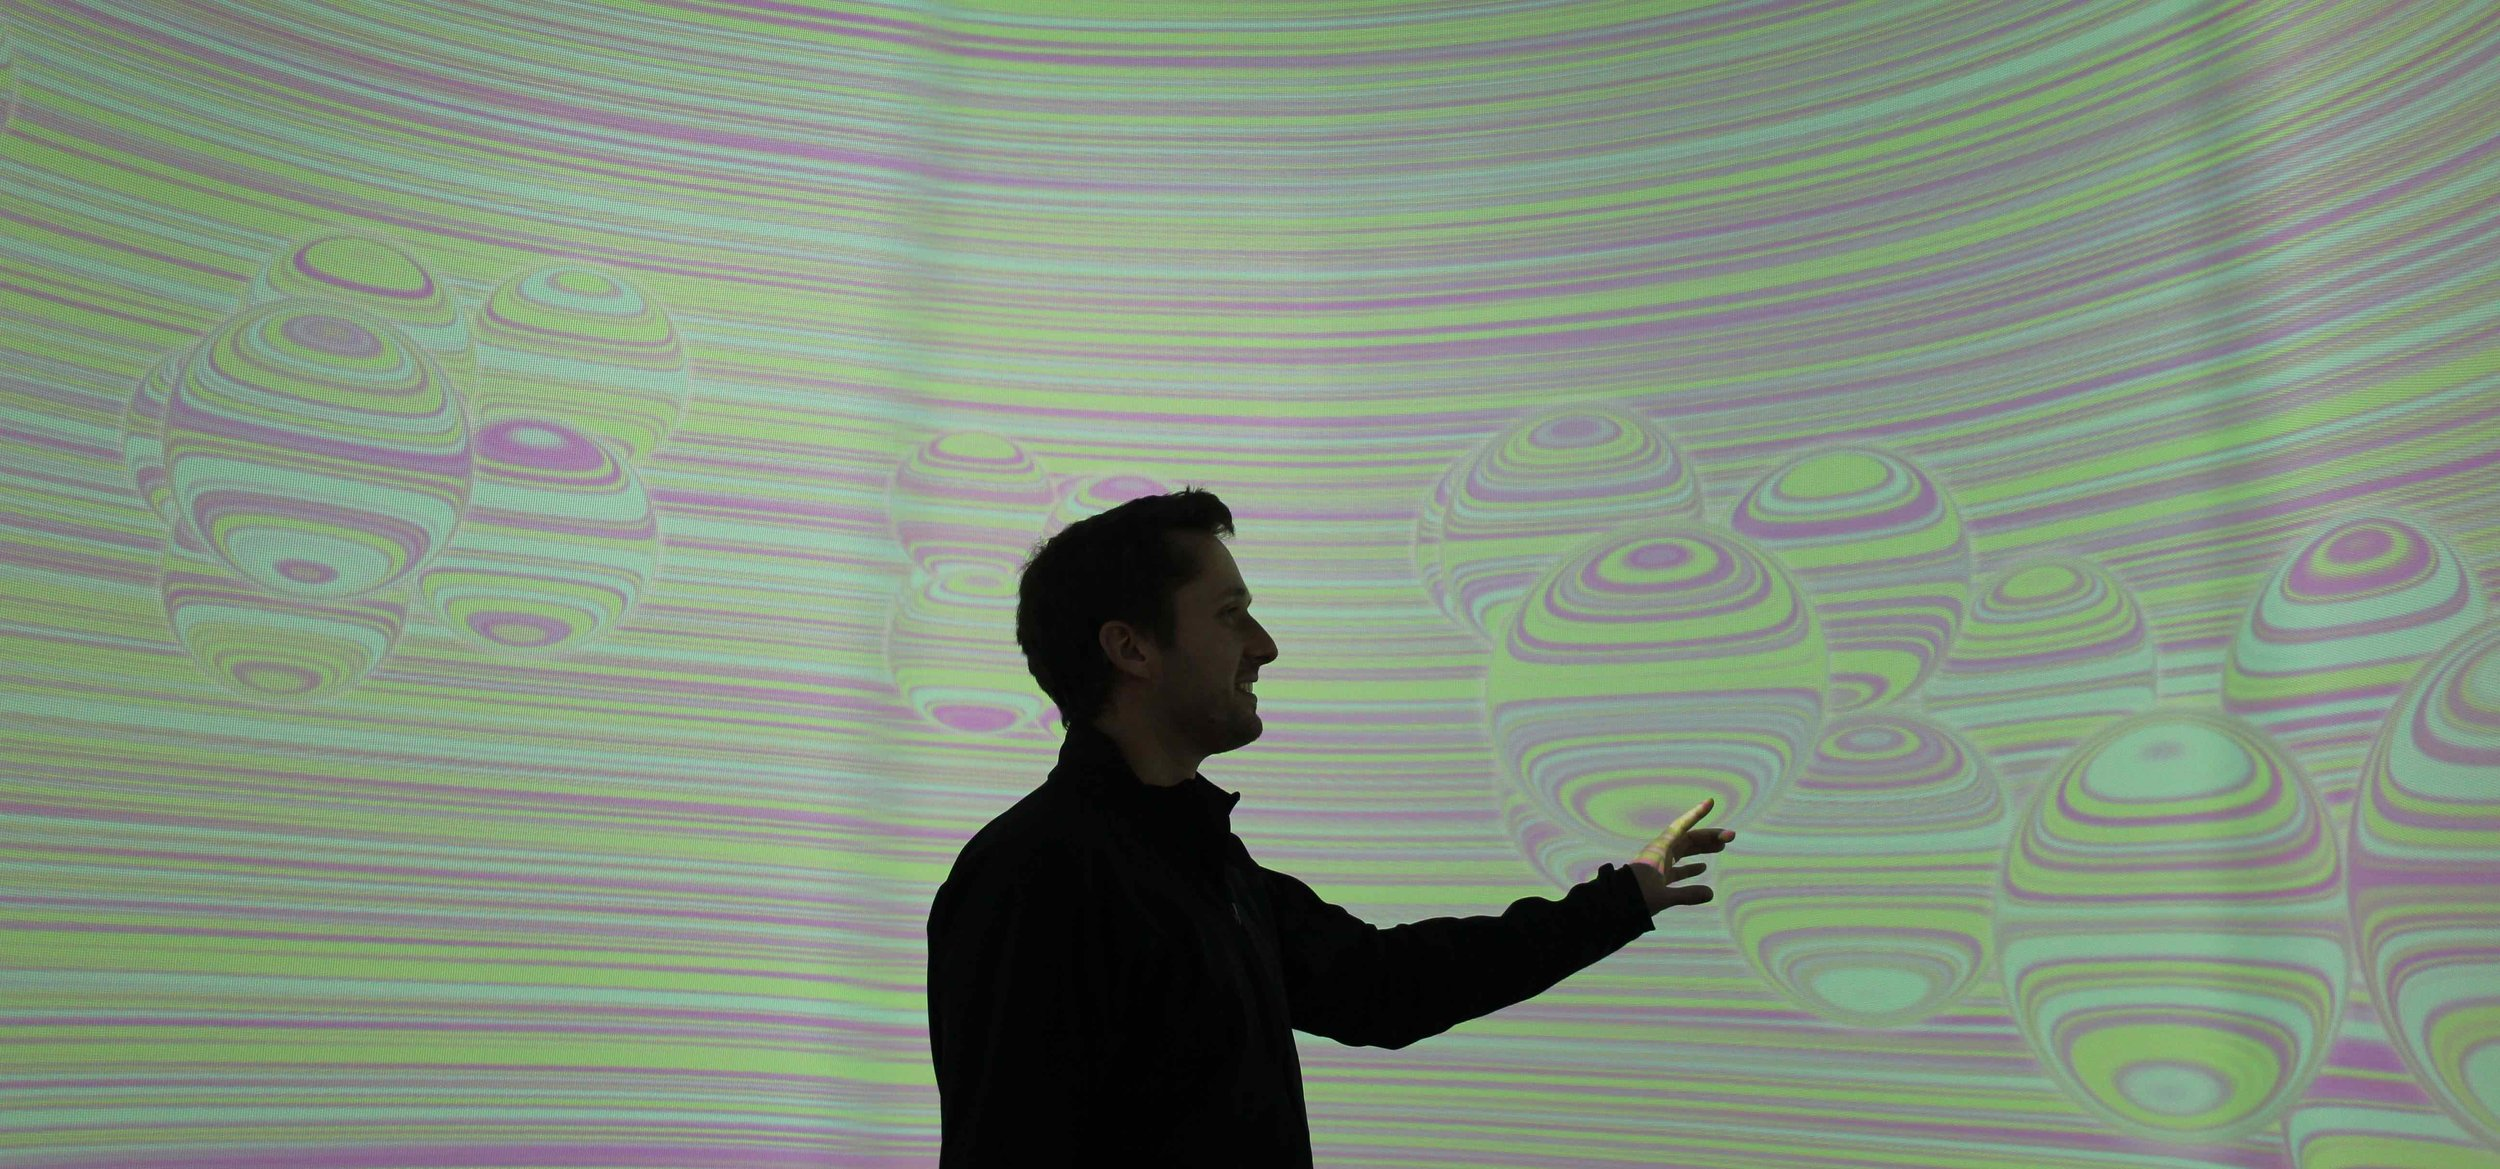 Radiant Matter is an immersive space that allows visitors to explore the historical ideas about atomic structure - from Democritus to the dawn of quantum physics. Produced by Esem Project in collaboration with Code on Canvas and Tactile Music.